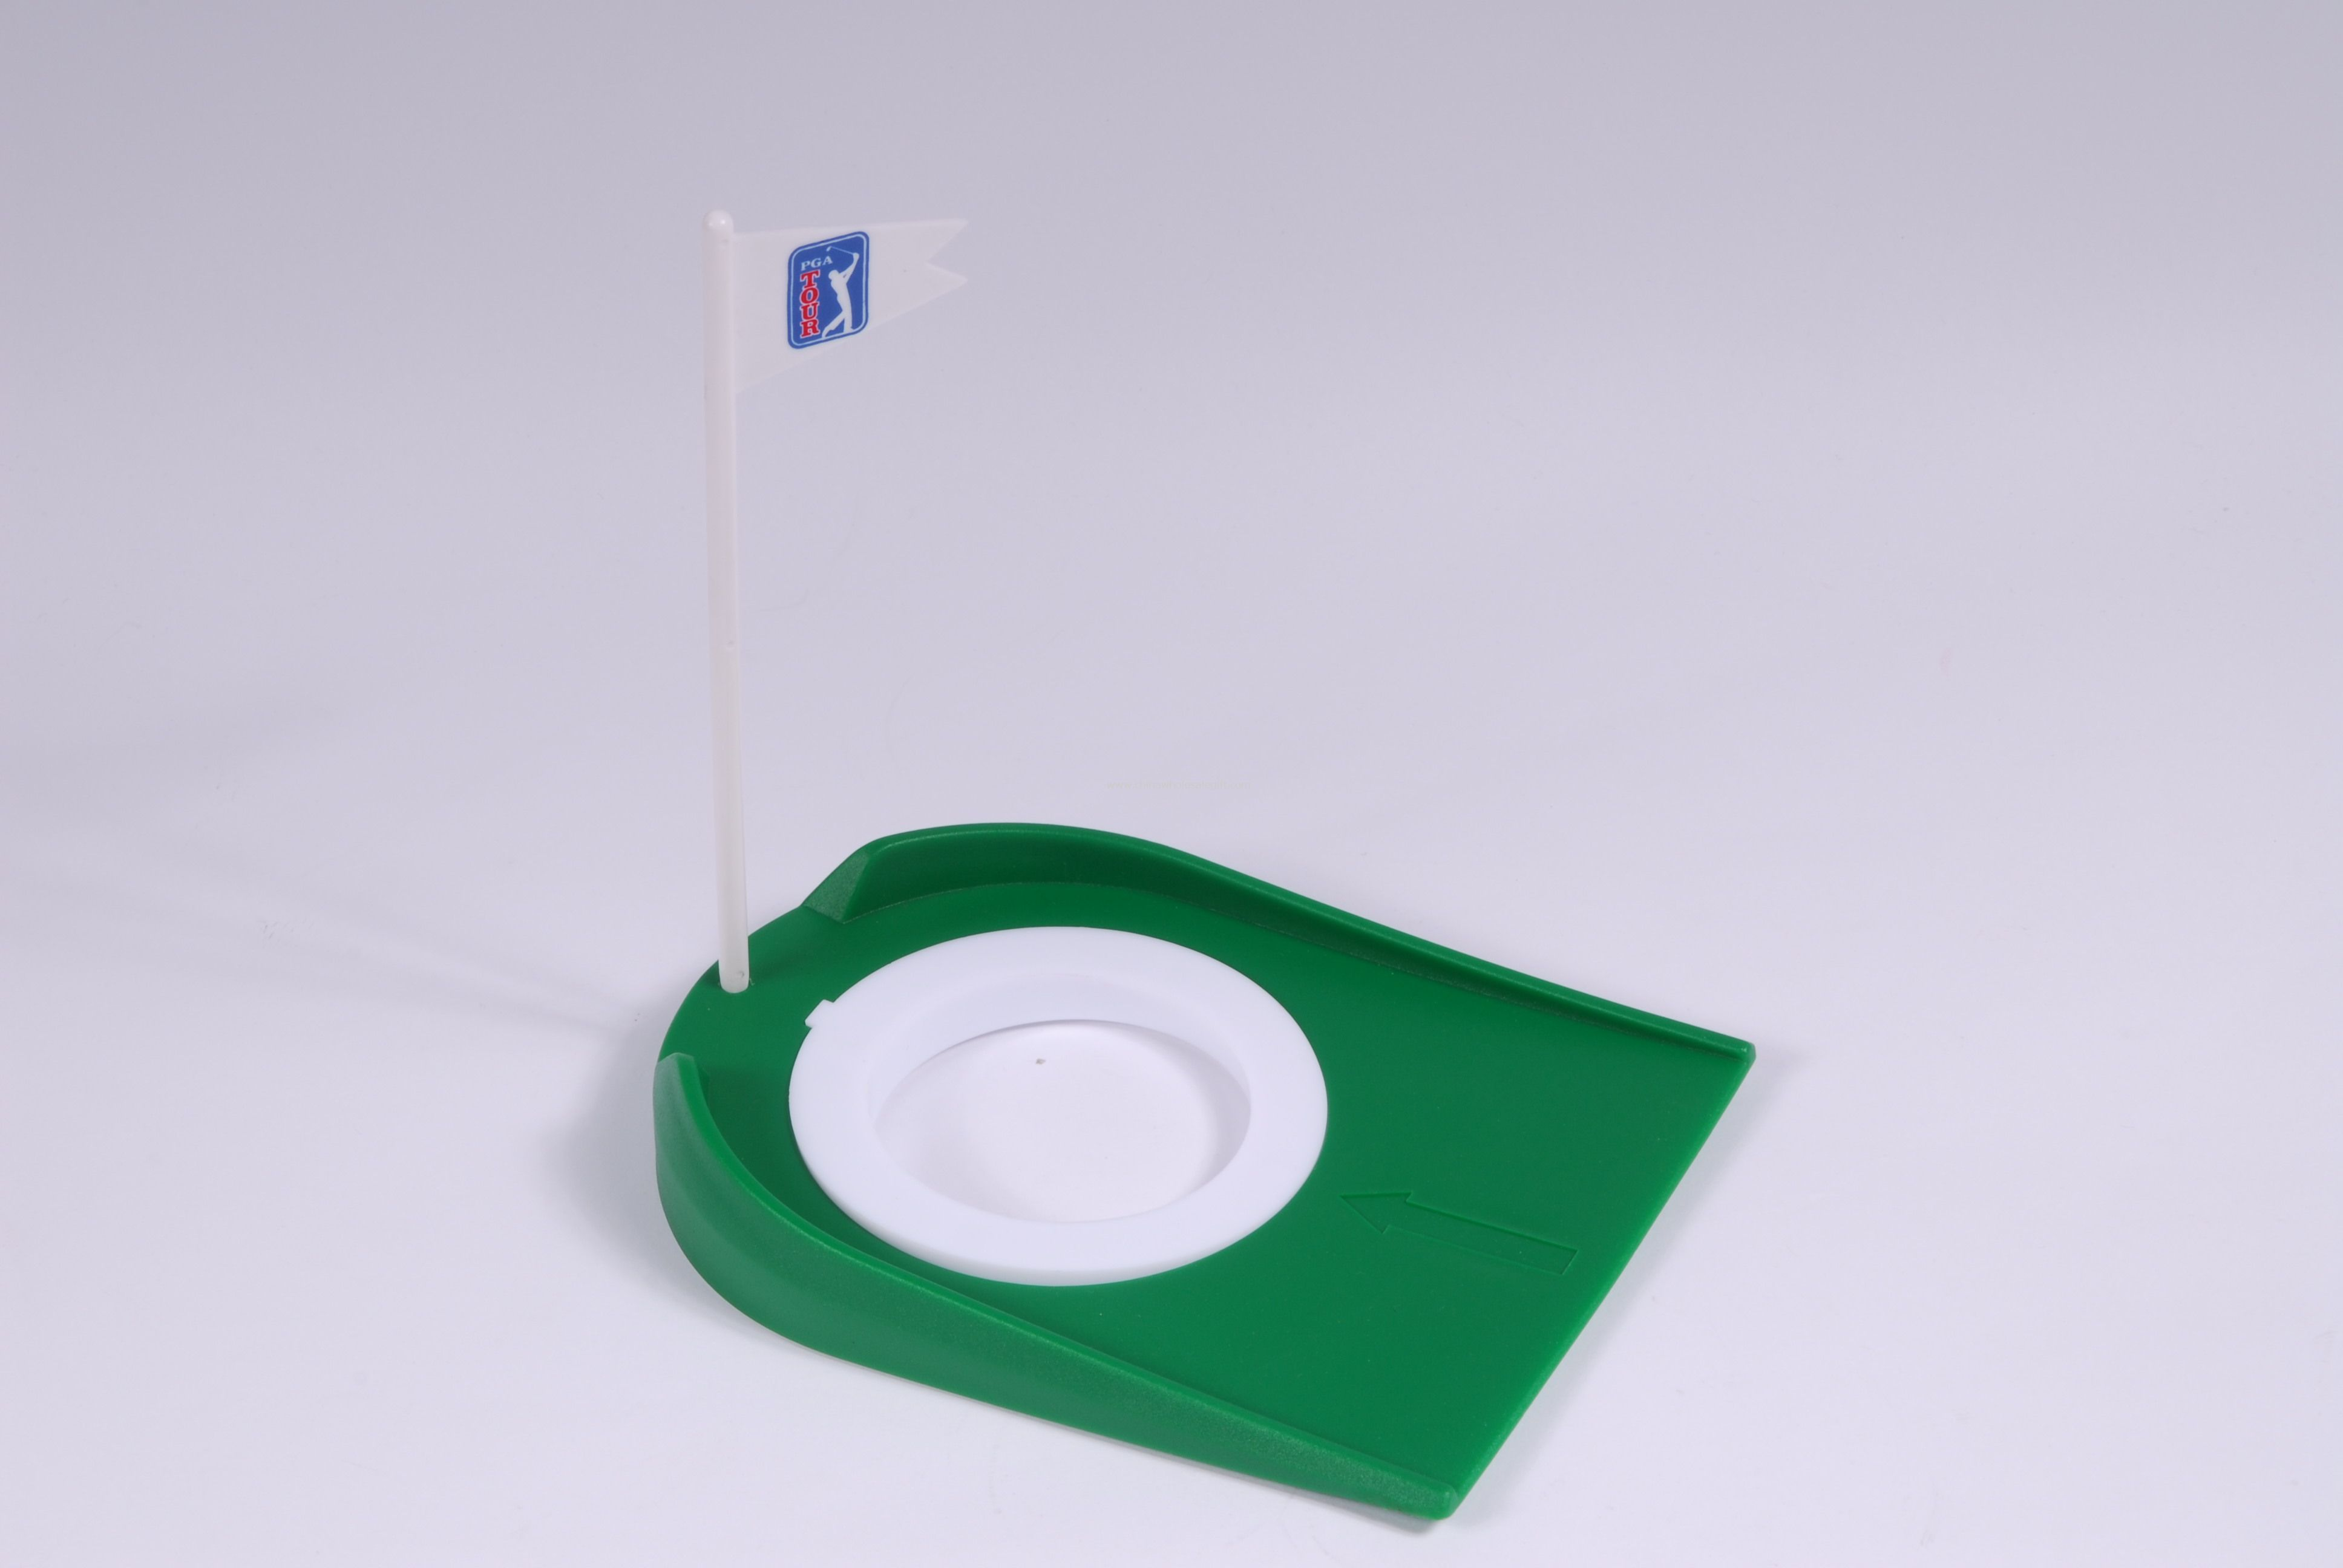 Deluxe Golf Putting Cup